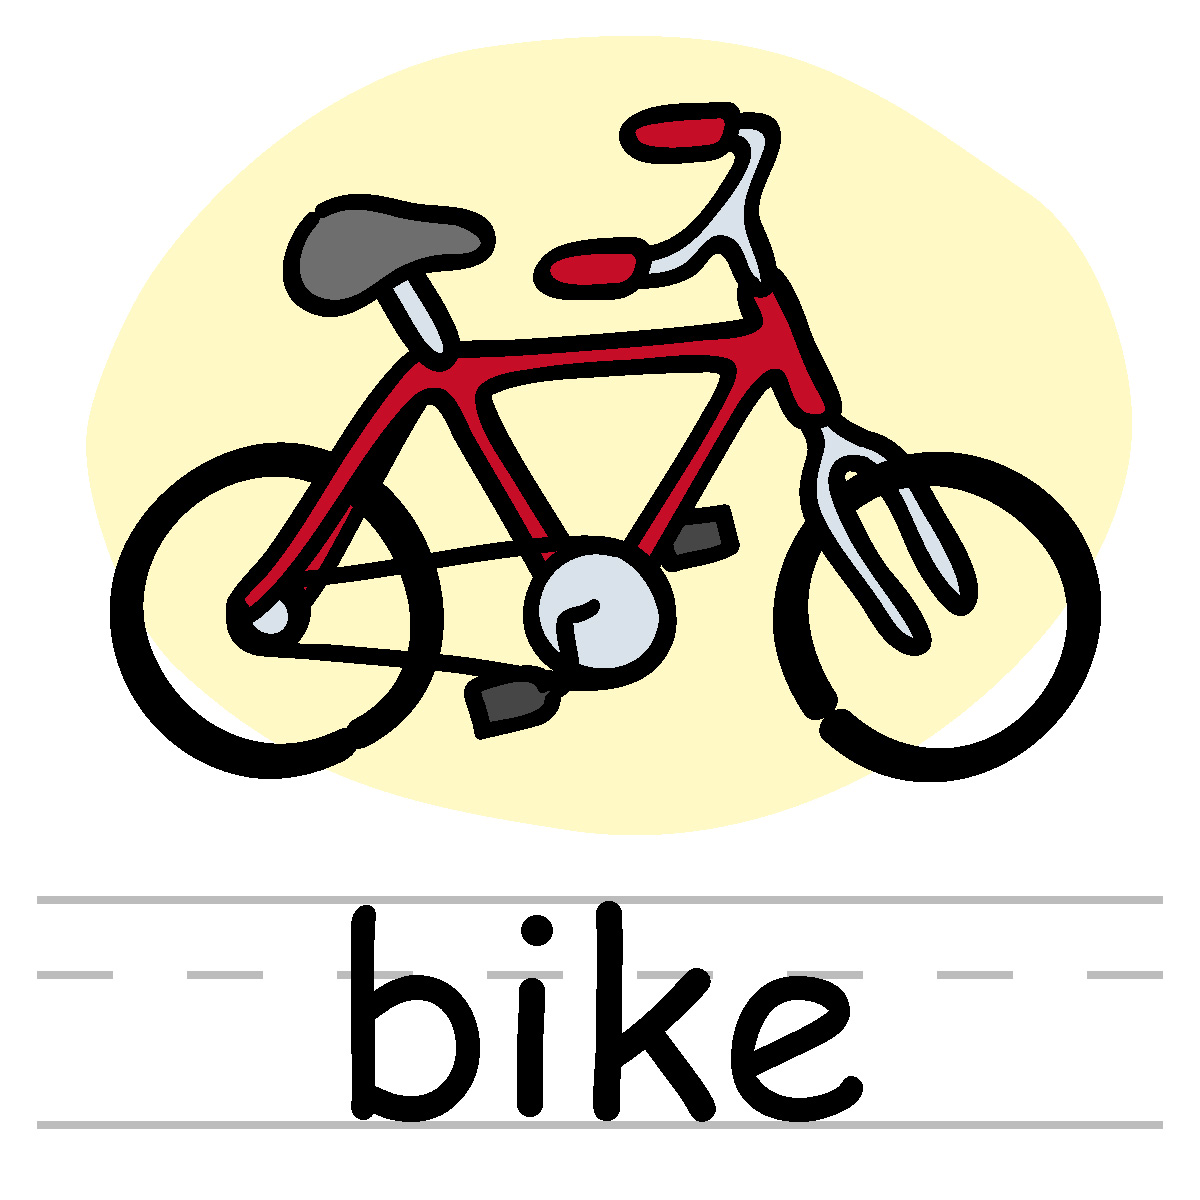 Bicycle clip art bikes clipart